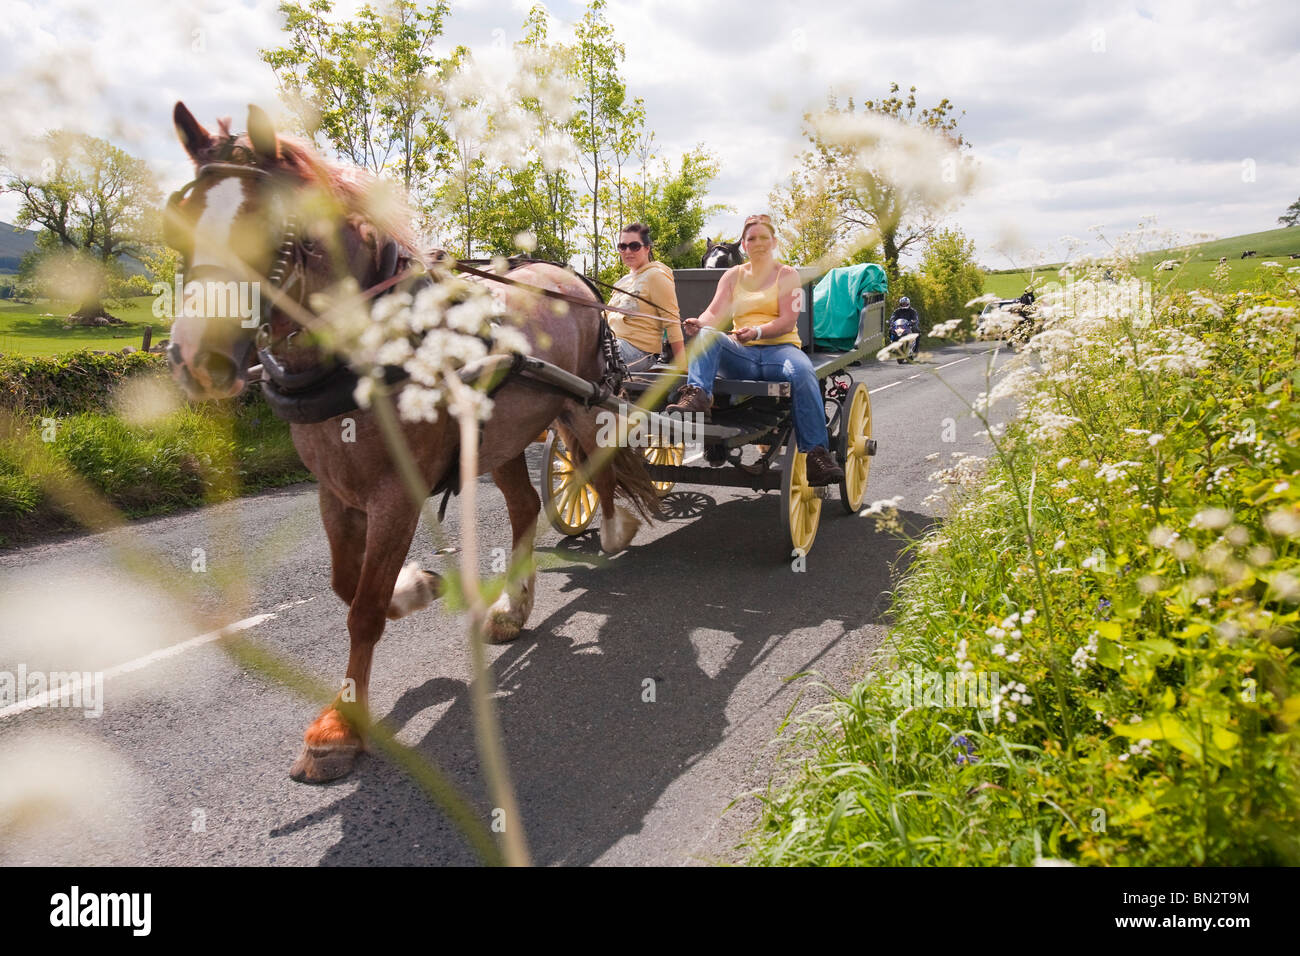 Gypsy's traveling towards the Appleby Horse Fair, near Kirkby Lonsdale, Cumbria, UK. - Stock Image